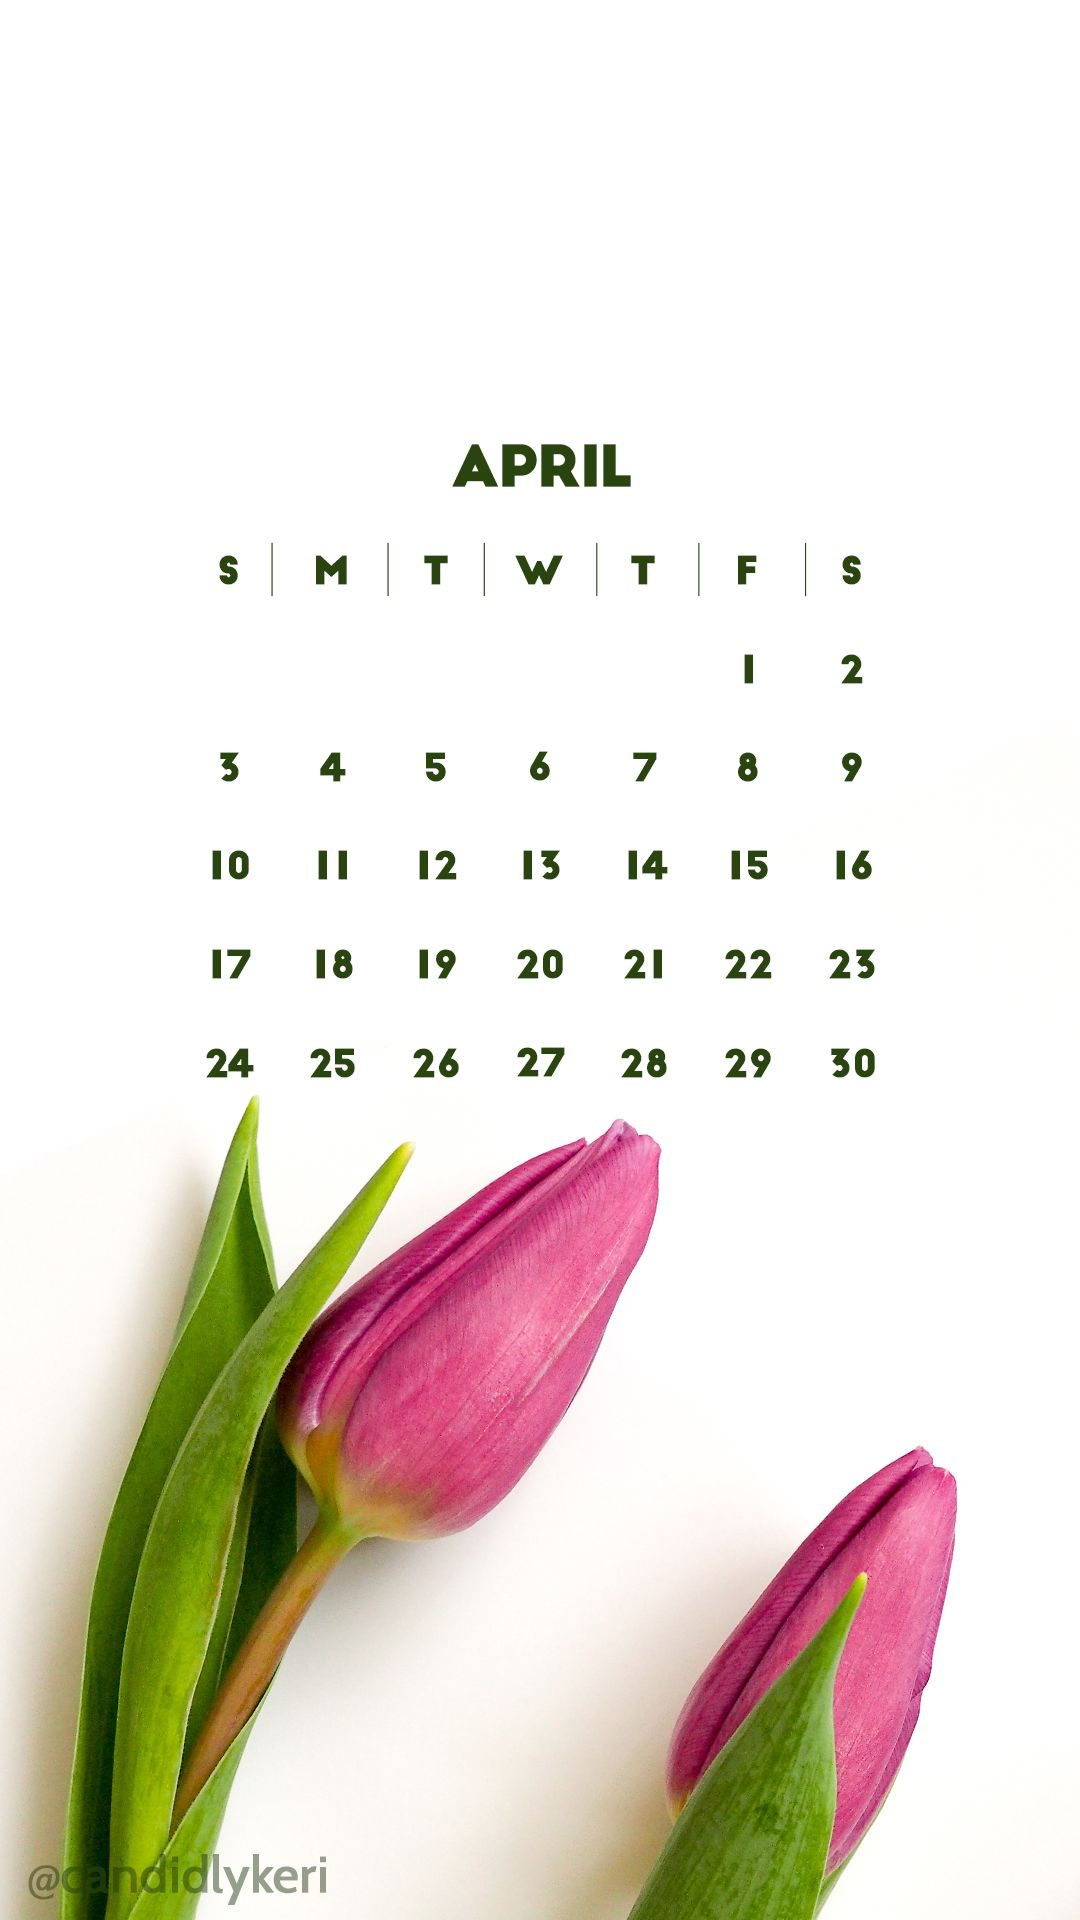 Wallpaper download blog - April 2016 Calendar Wallpaper Free Download For Mobile Iphone And Android Simple White And